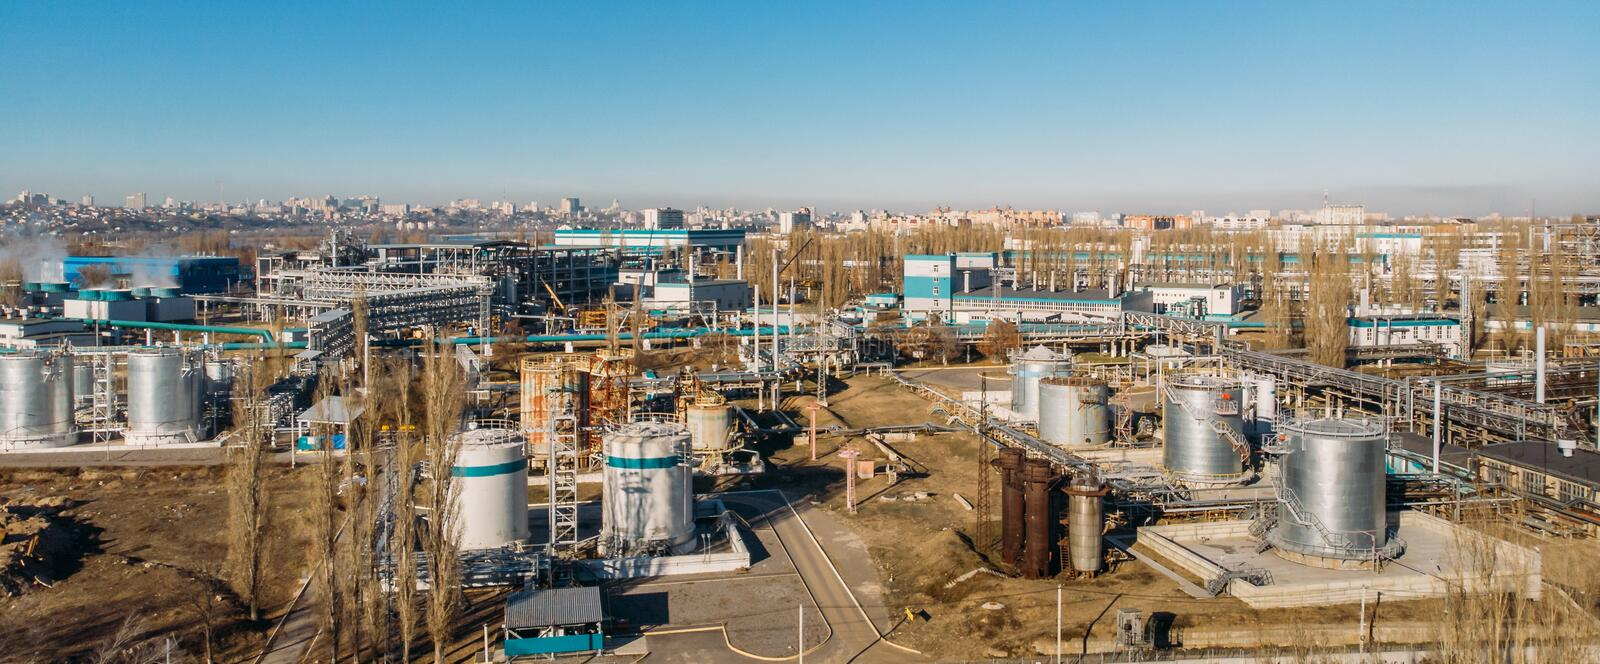 Aerial view of industrial factory or plant buildings with steel storage construction tanks and pipes royalty free stock images